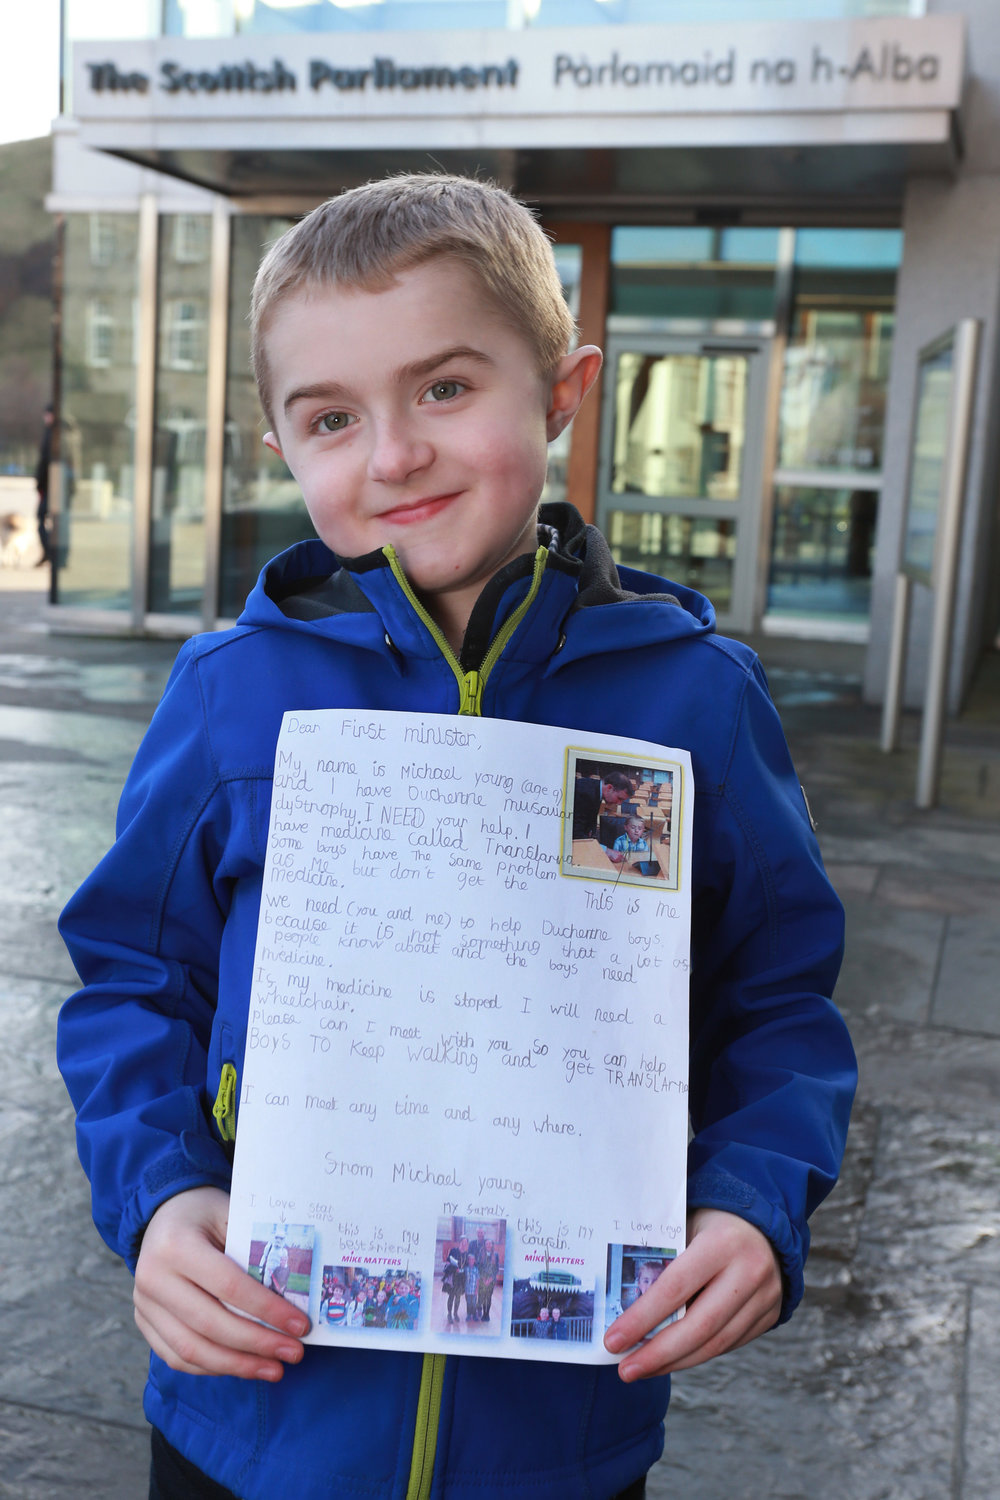 A fighter: 9 year old Michael's personal appeal to the First Minister